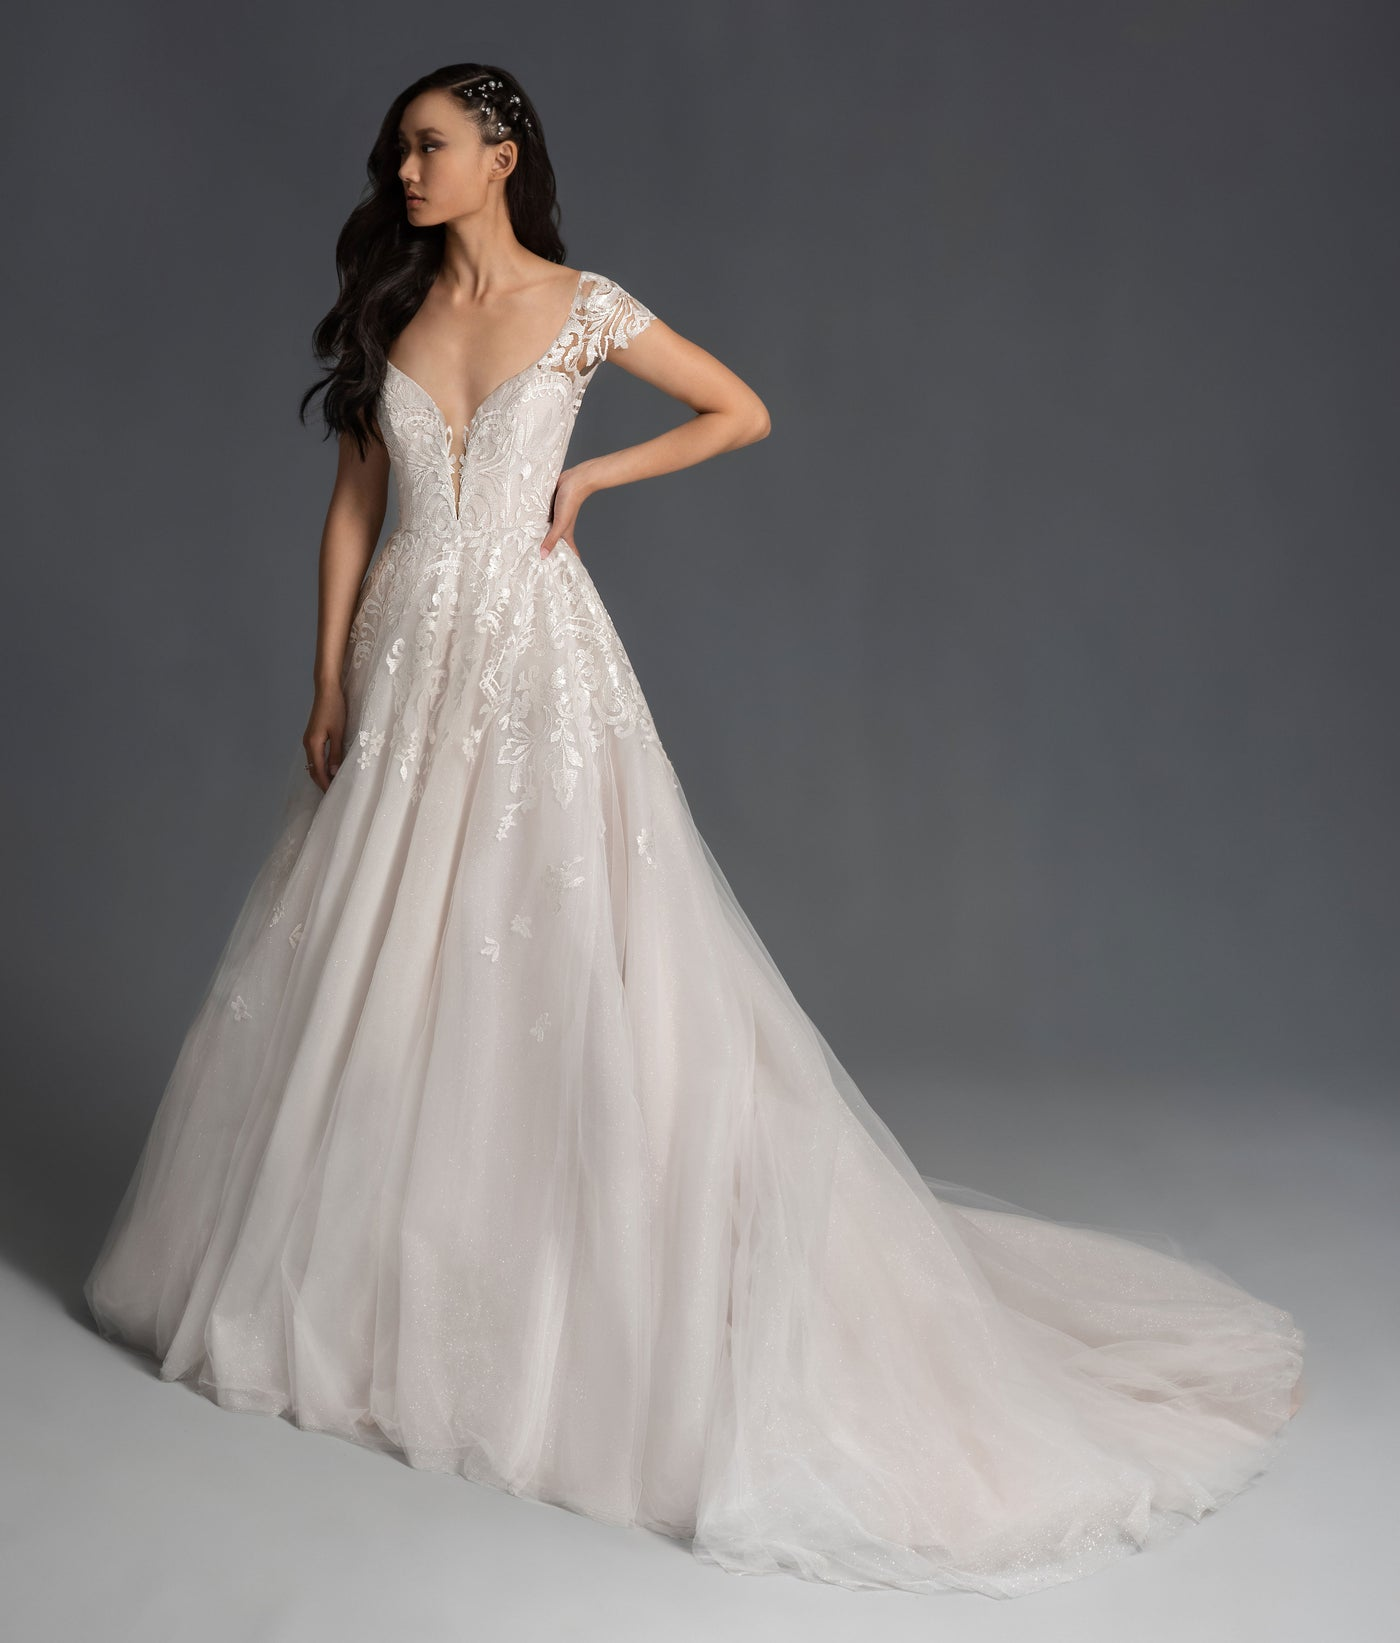 Brando - New, Gown, Hayley Paige - Eternal Bridal